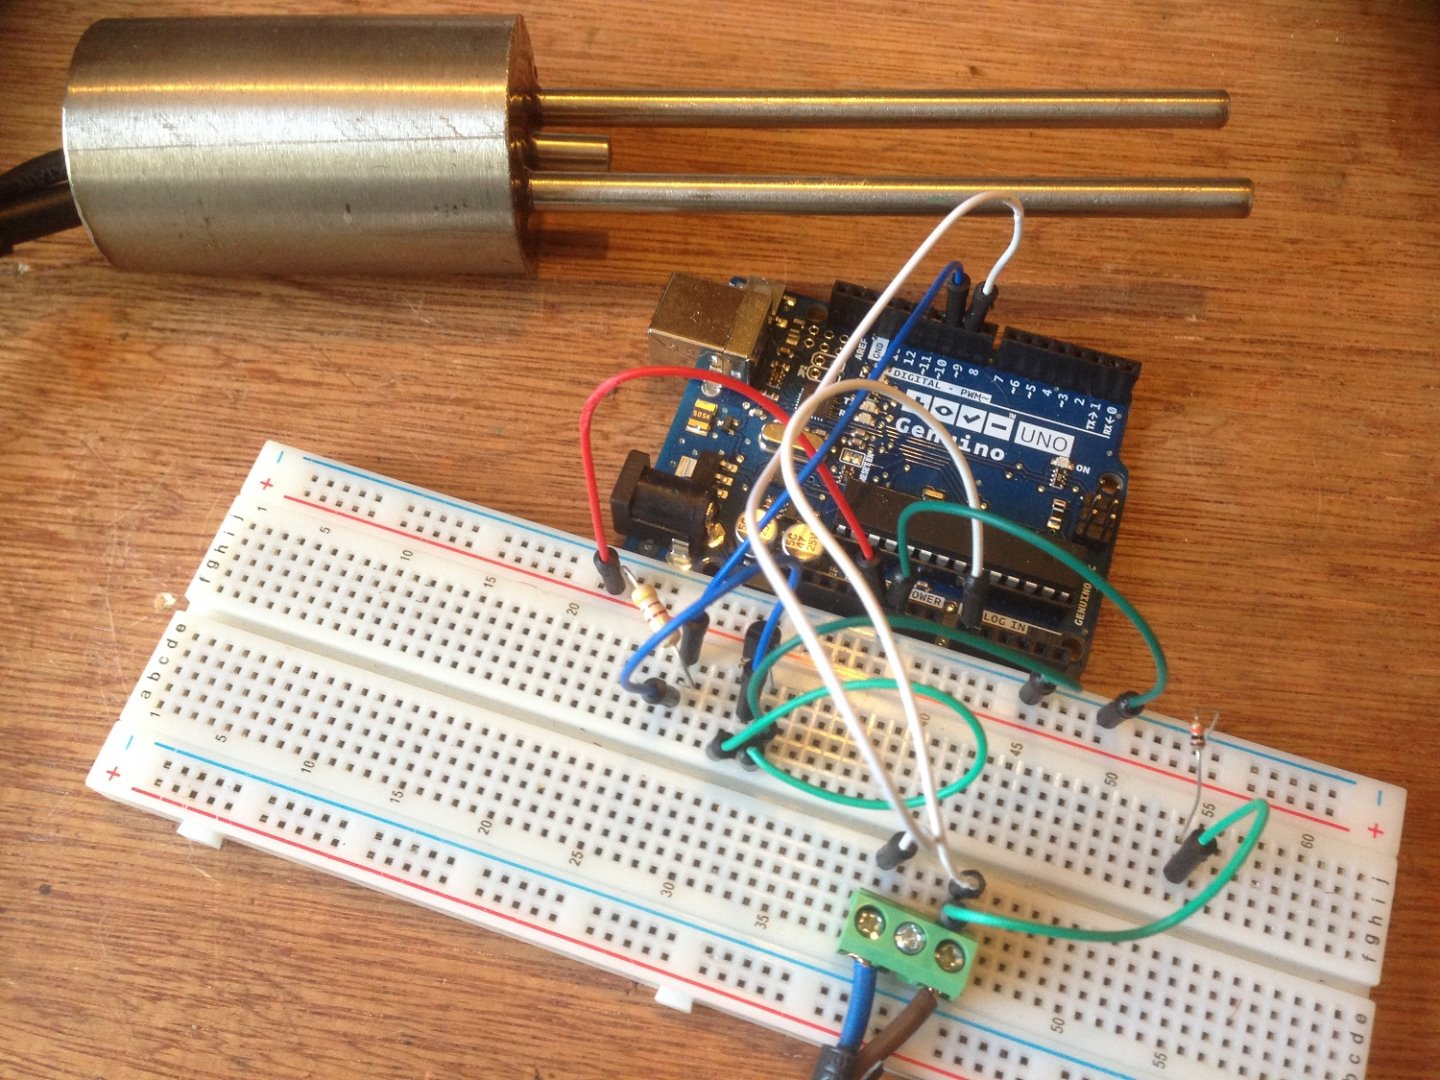 Instructions Arduino Gprs Iot Weather Station Digital Thermometer Circuit Ds18b20 Electronics Projects Circuits The Is Easy To Set Up But Wiring Counter Intuitive And There Are Two Different Ways Wire It Which Can Create More Confusion